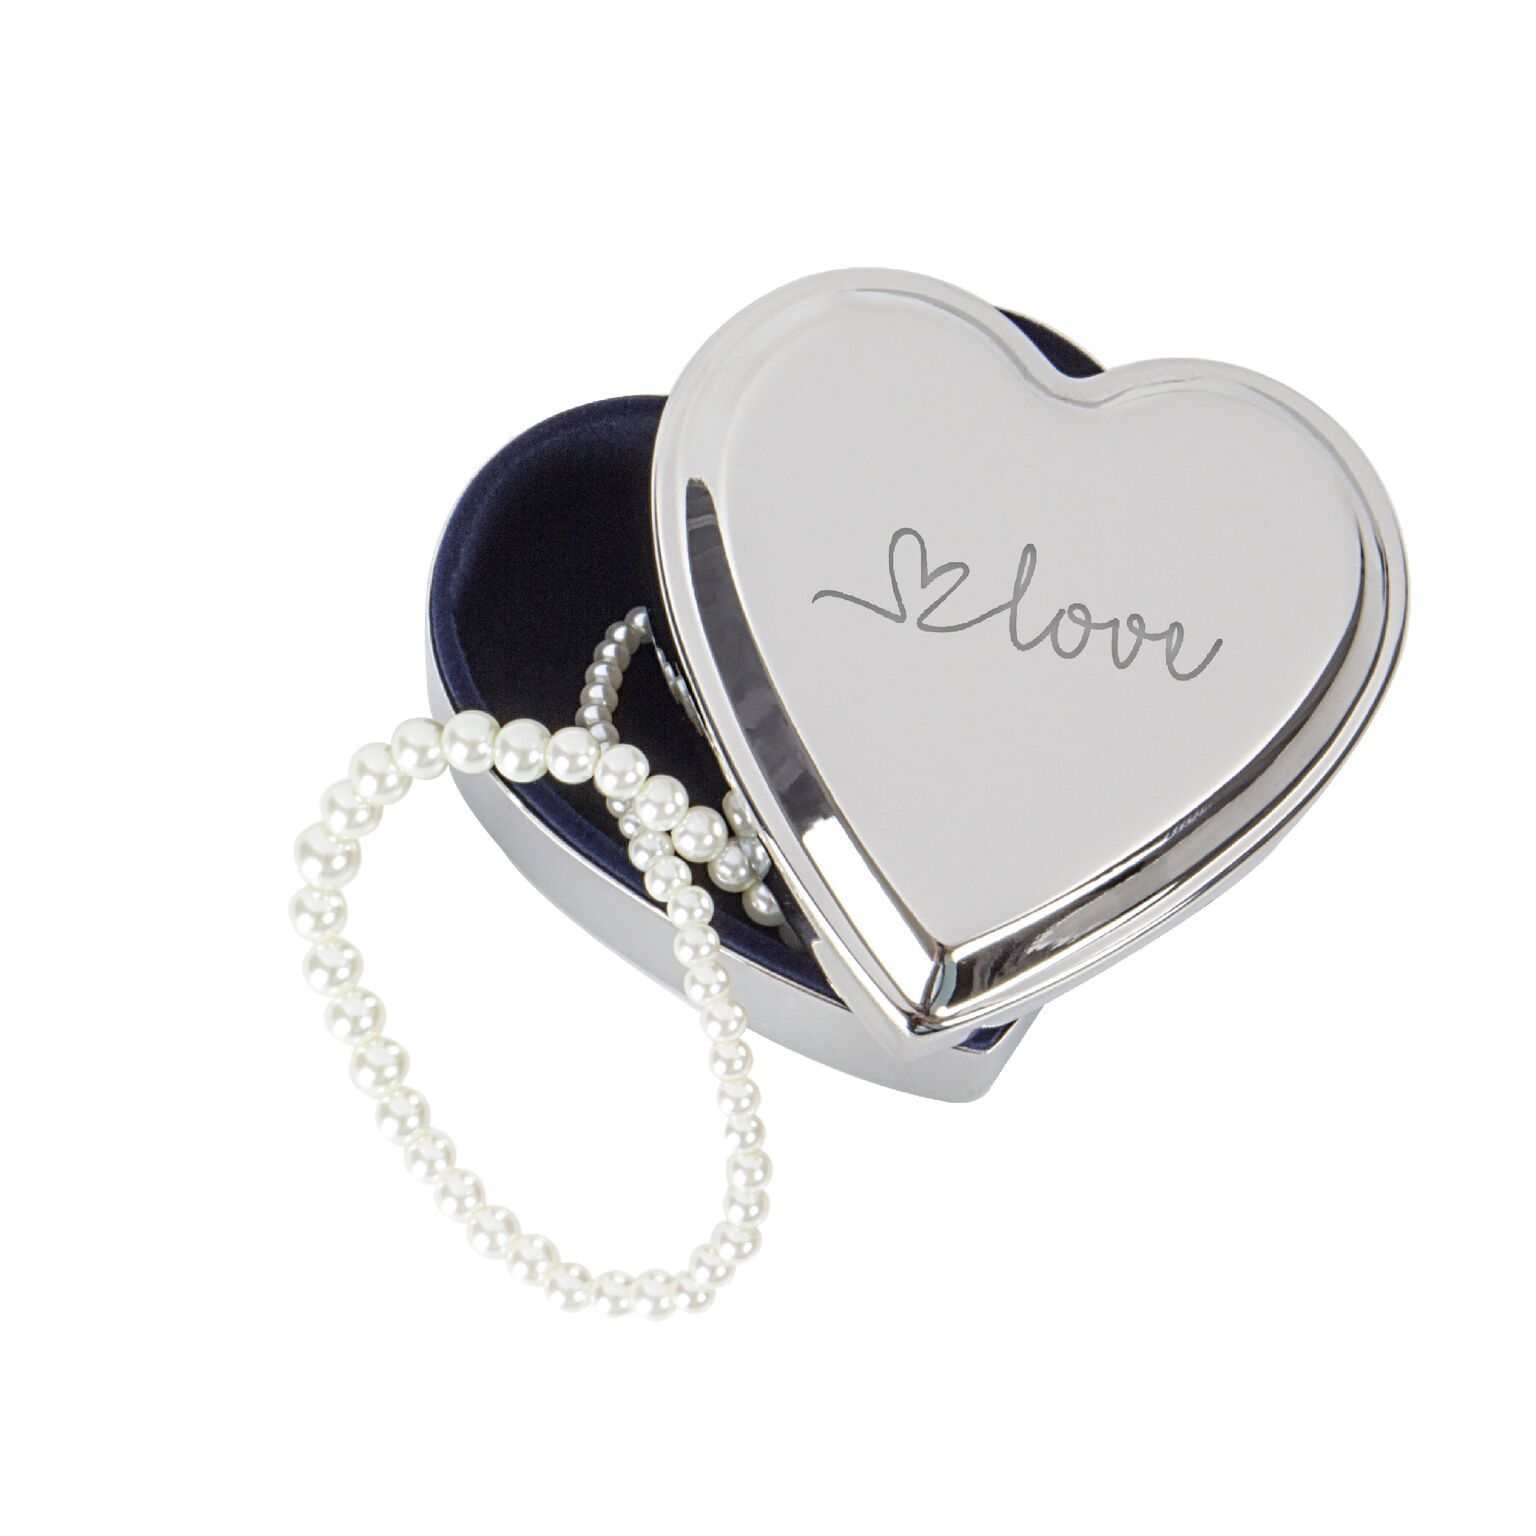 Cathys Concepts V17-1882 Love Silver Heart Keepsake Accessory Box